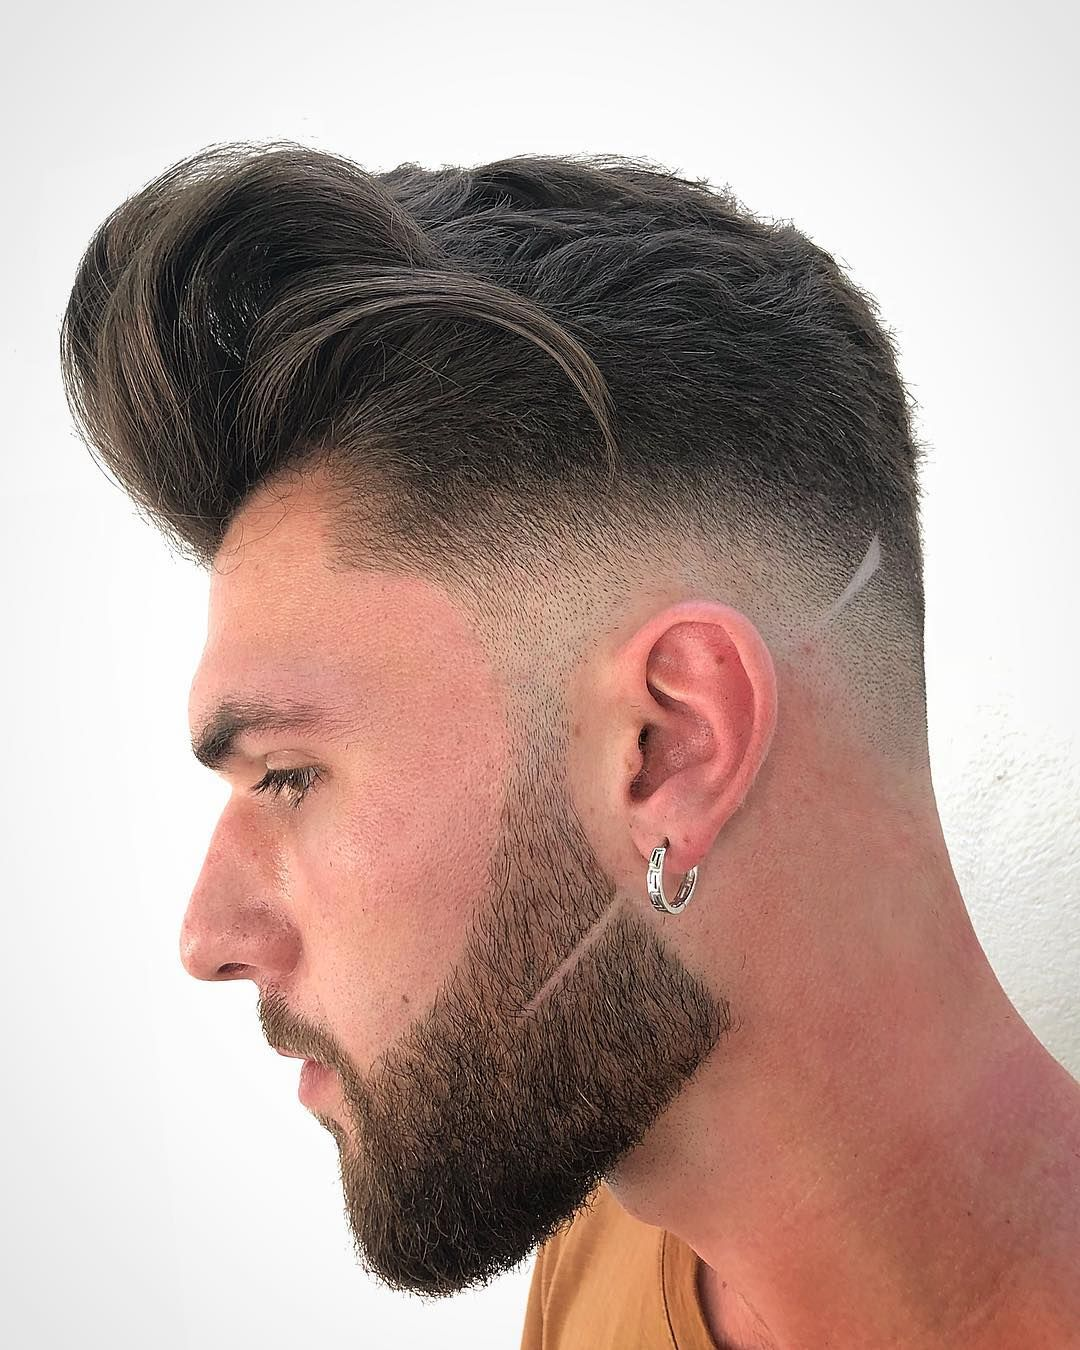 31 New Men S Hairstyles 2020 Update Beard Hairstyle Beard Styles For Men Short Hair With Beard